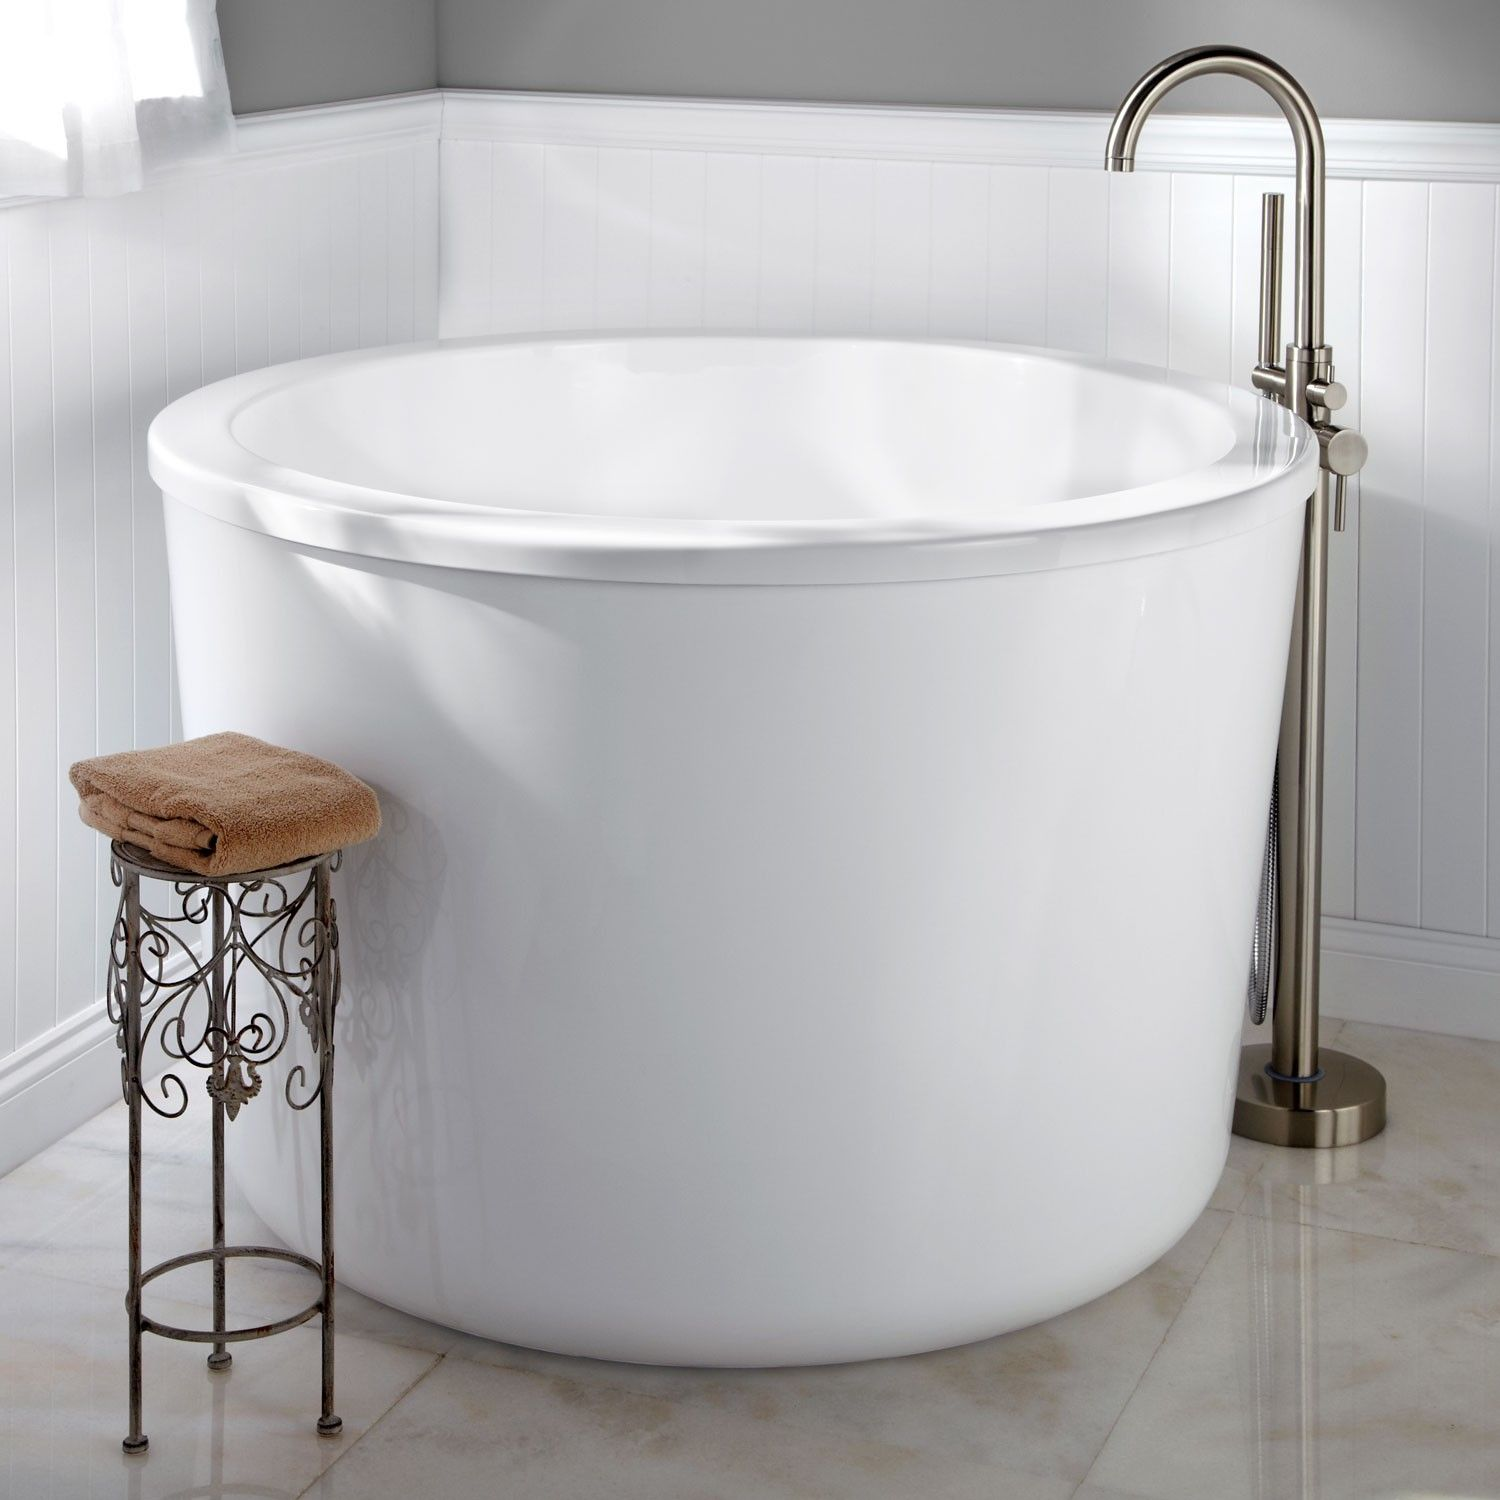 acrylic japanese soaking tub. 47  Caruso Acrylic Japanese Soaking Tub soaking tubs